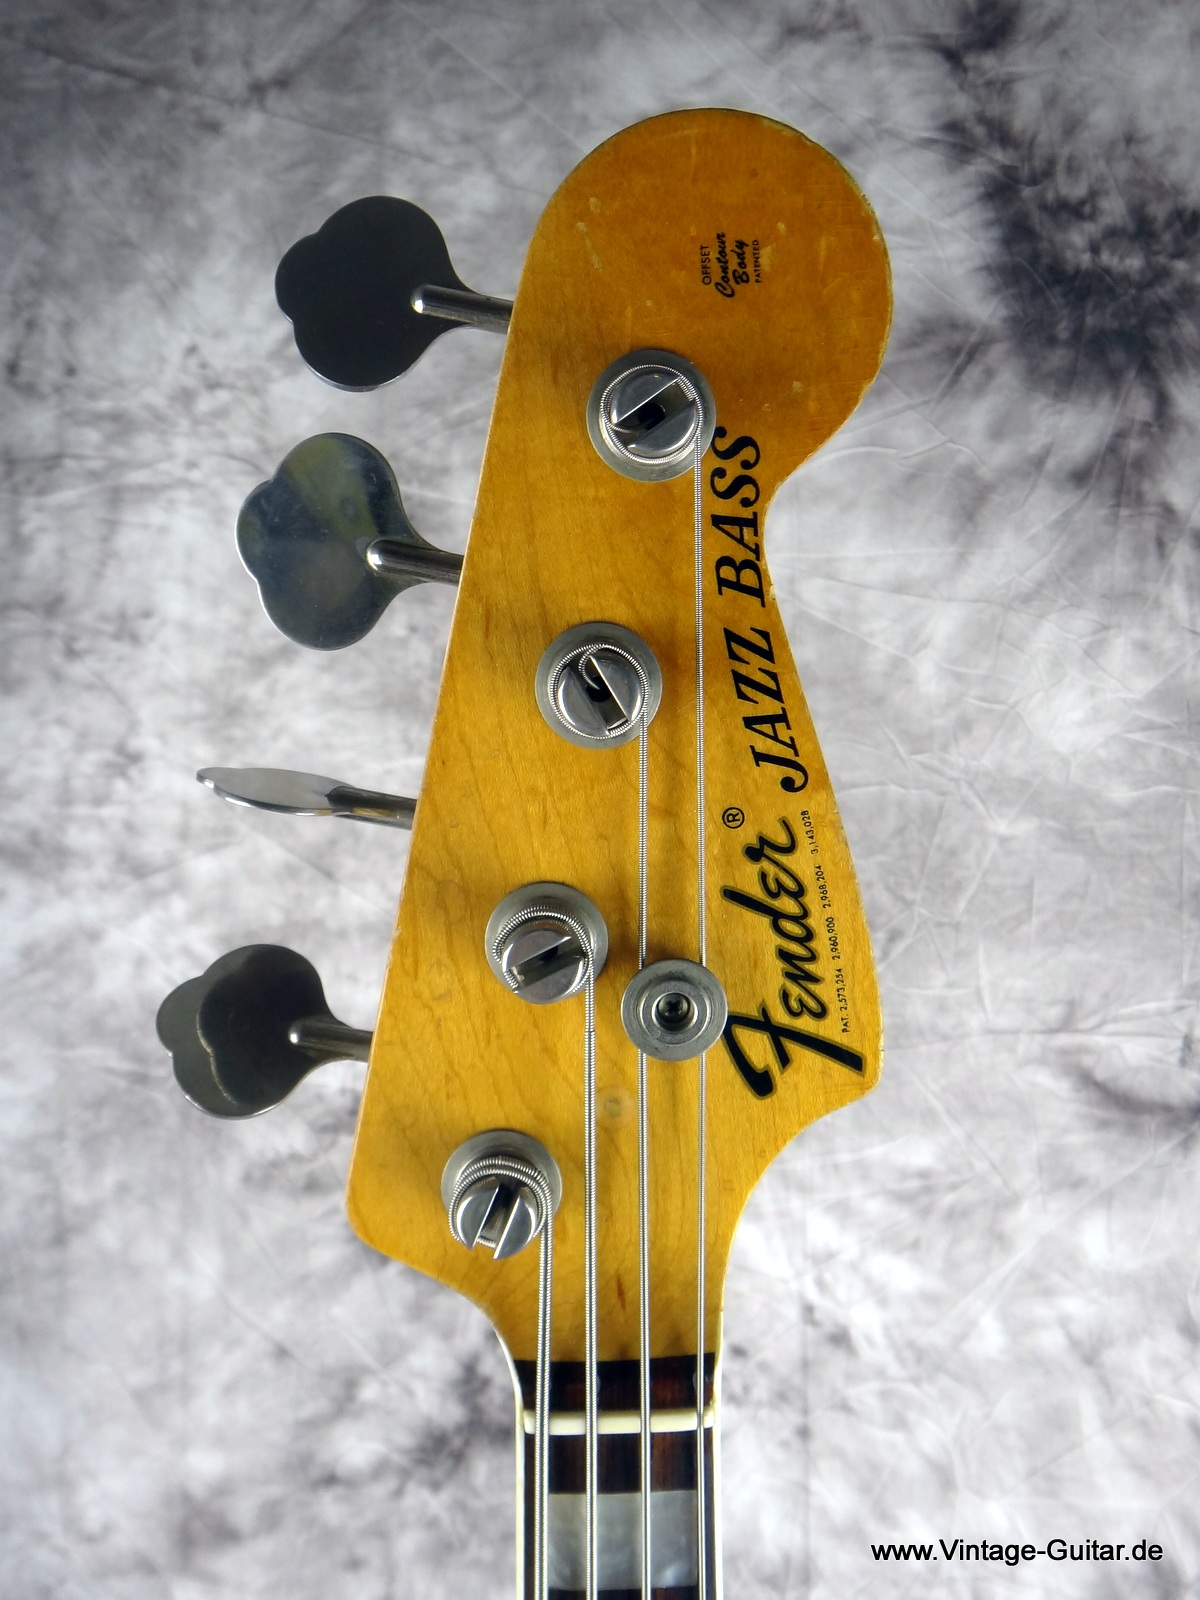 img/vintage/1786/Fender_Jazz-Bass_1974_sunburst-alder-body-003.JPG